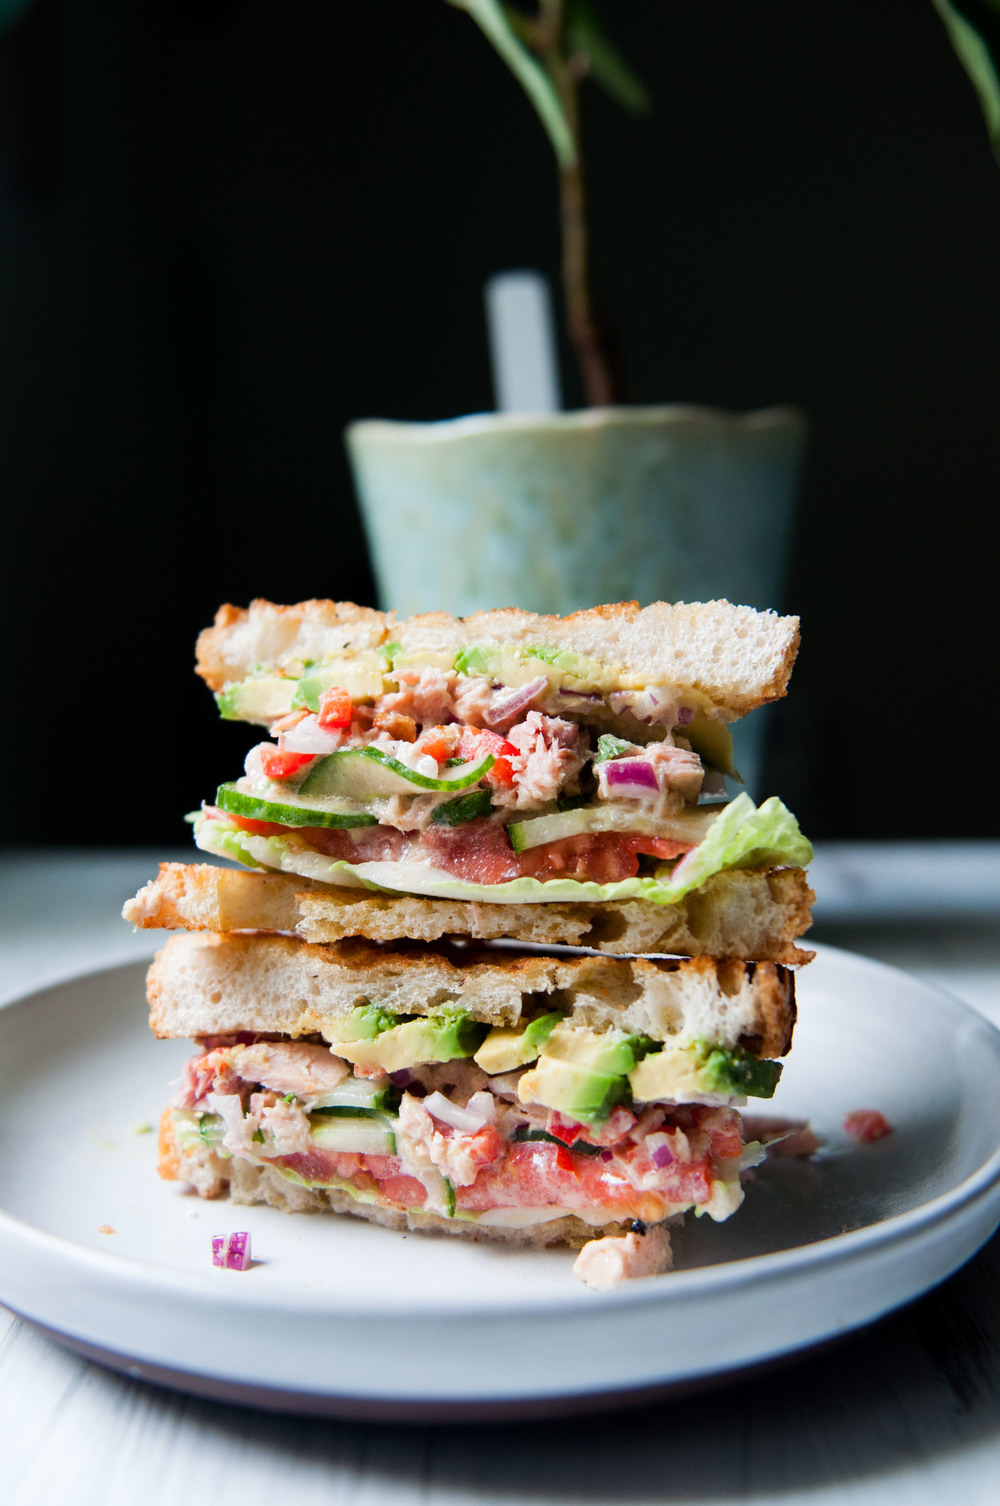 NOT-YOUR-AVERAGE TUNA SALAD SANDWICH